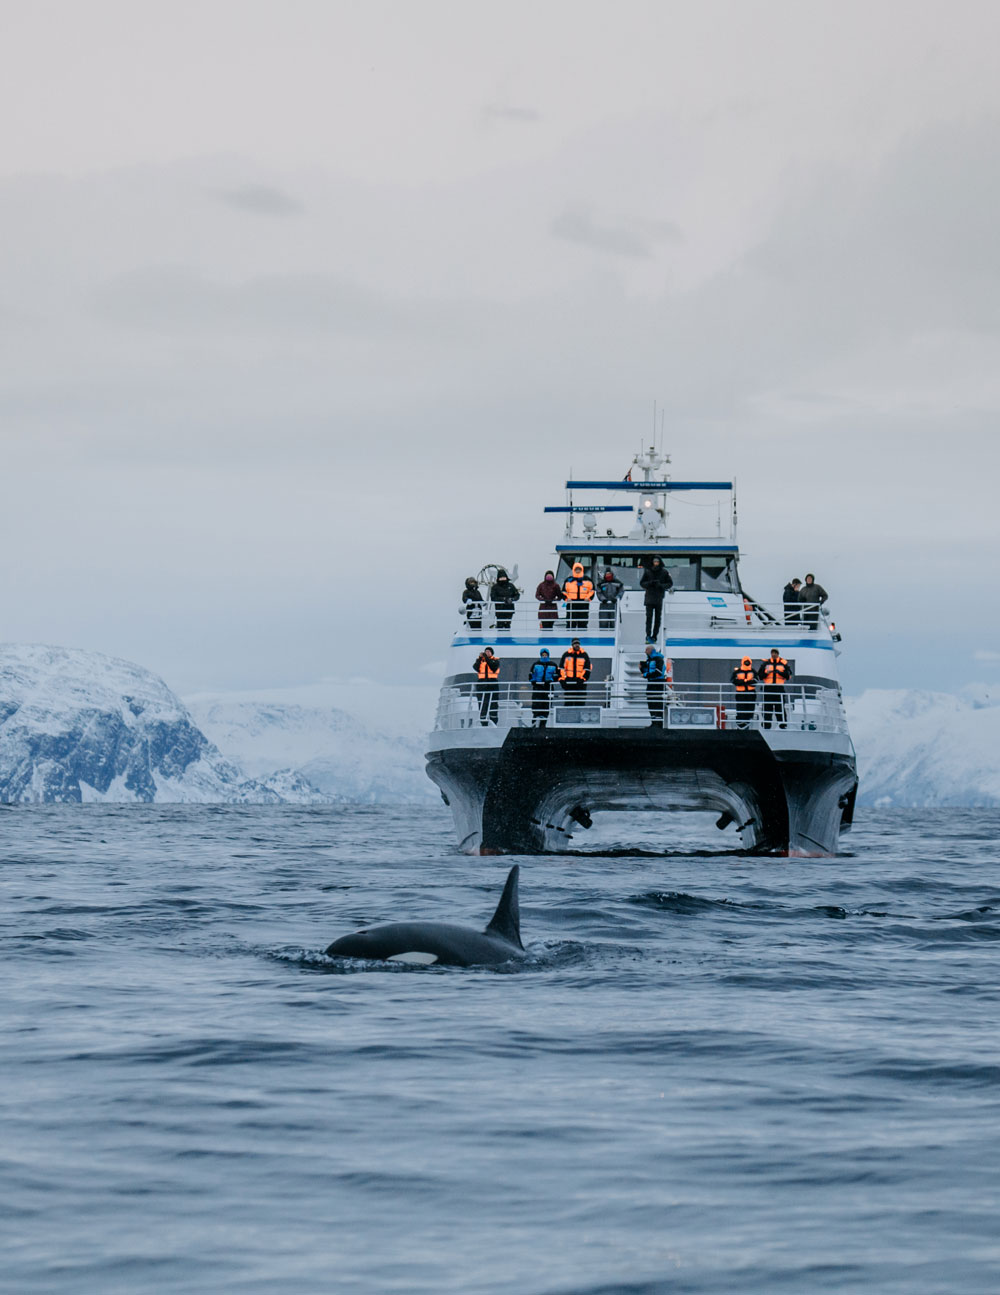 Arctic Expedition catamaran